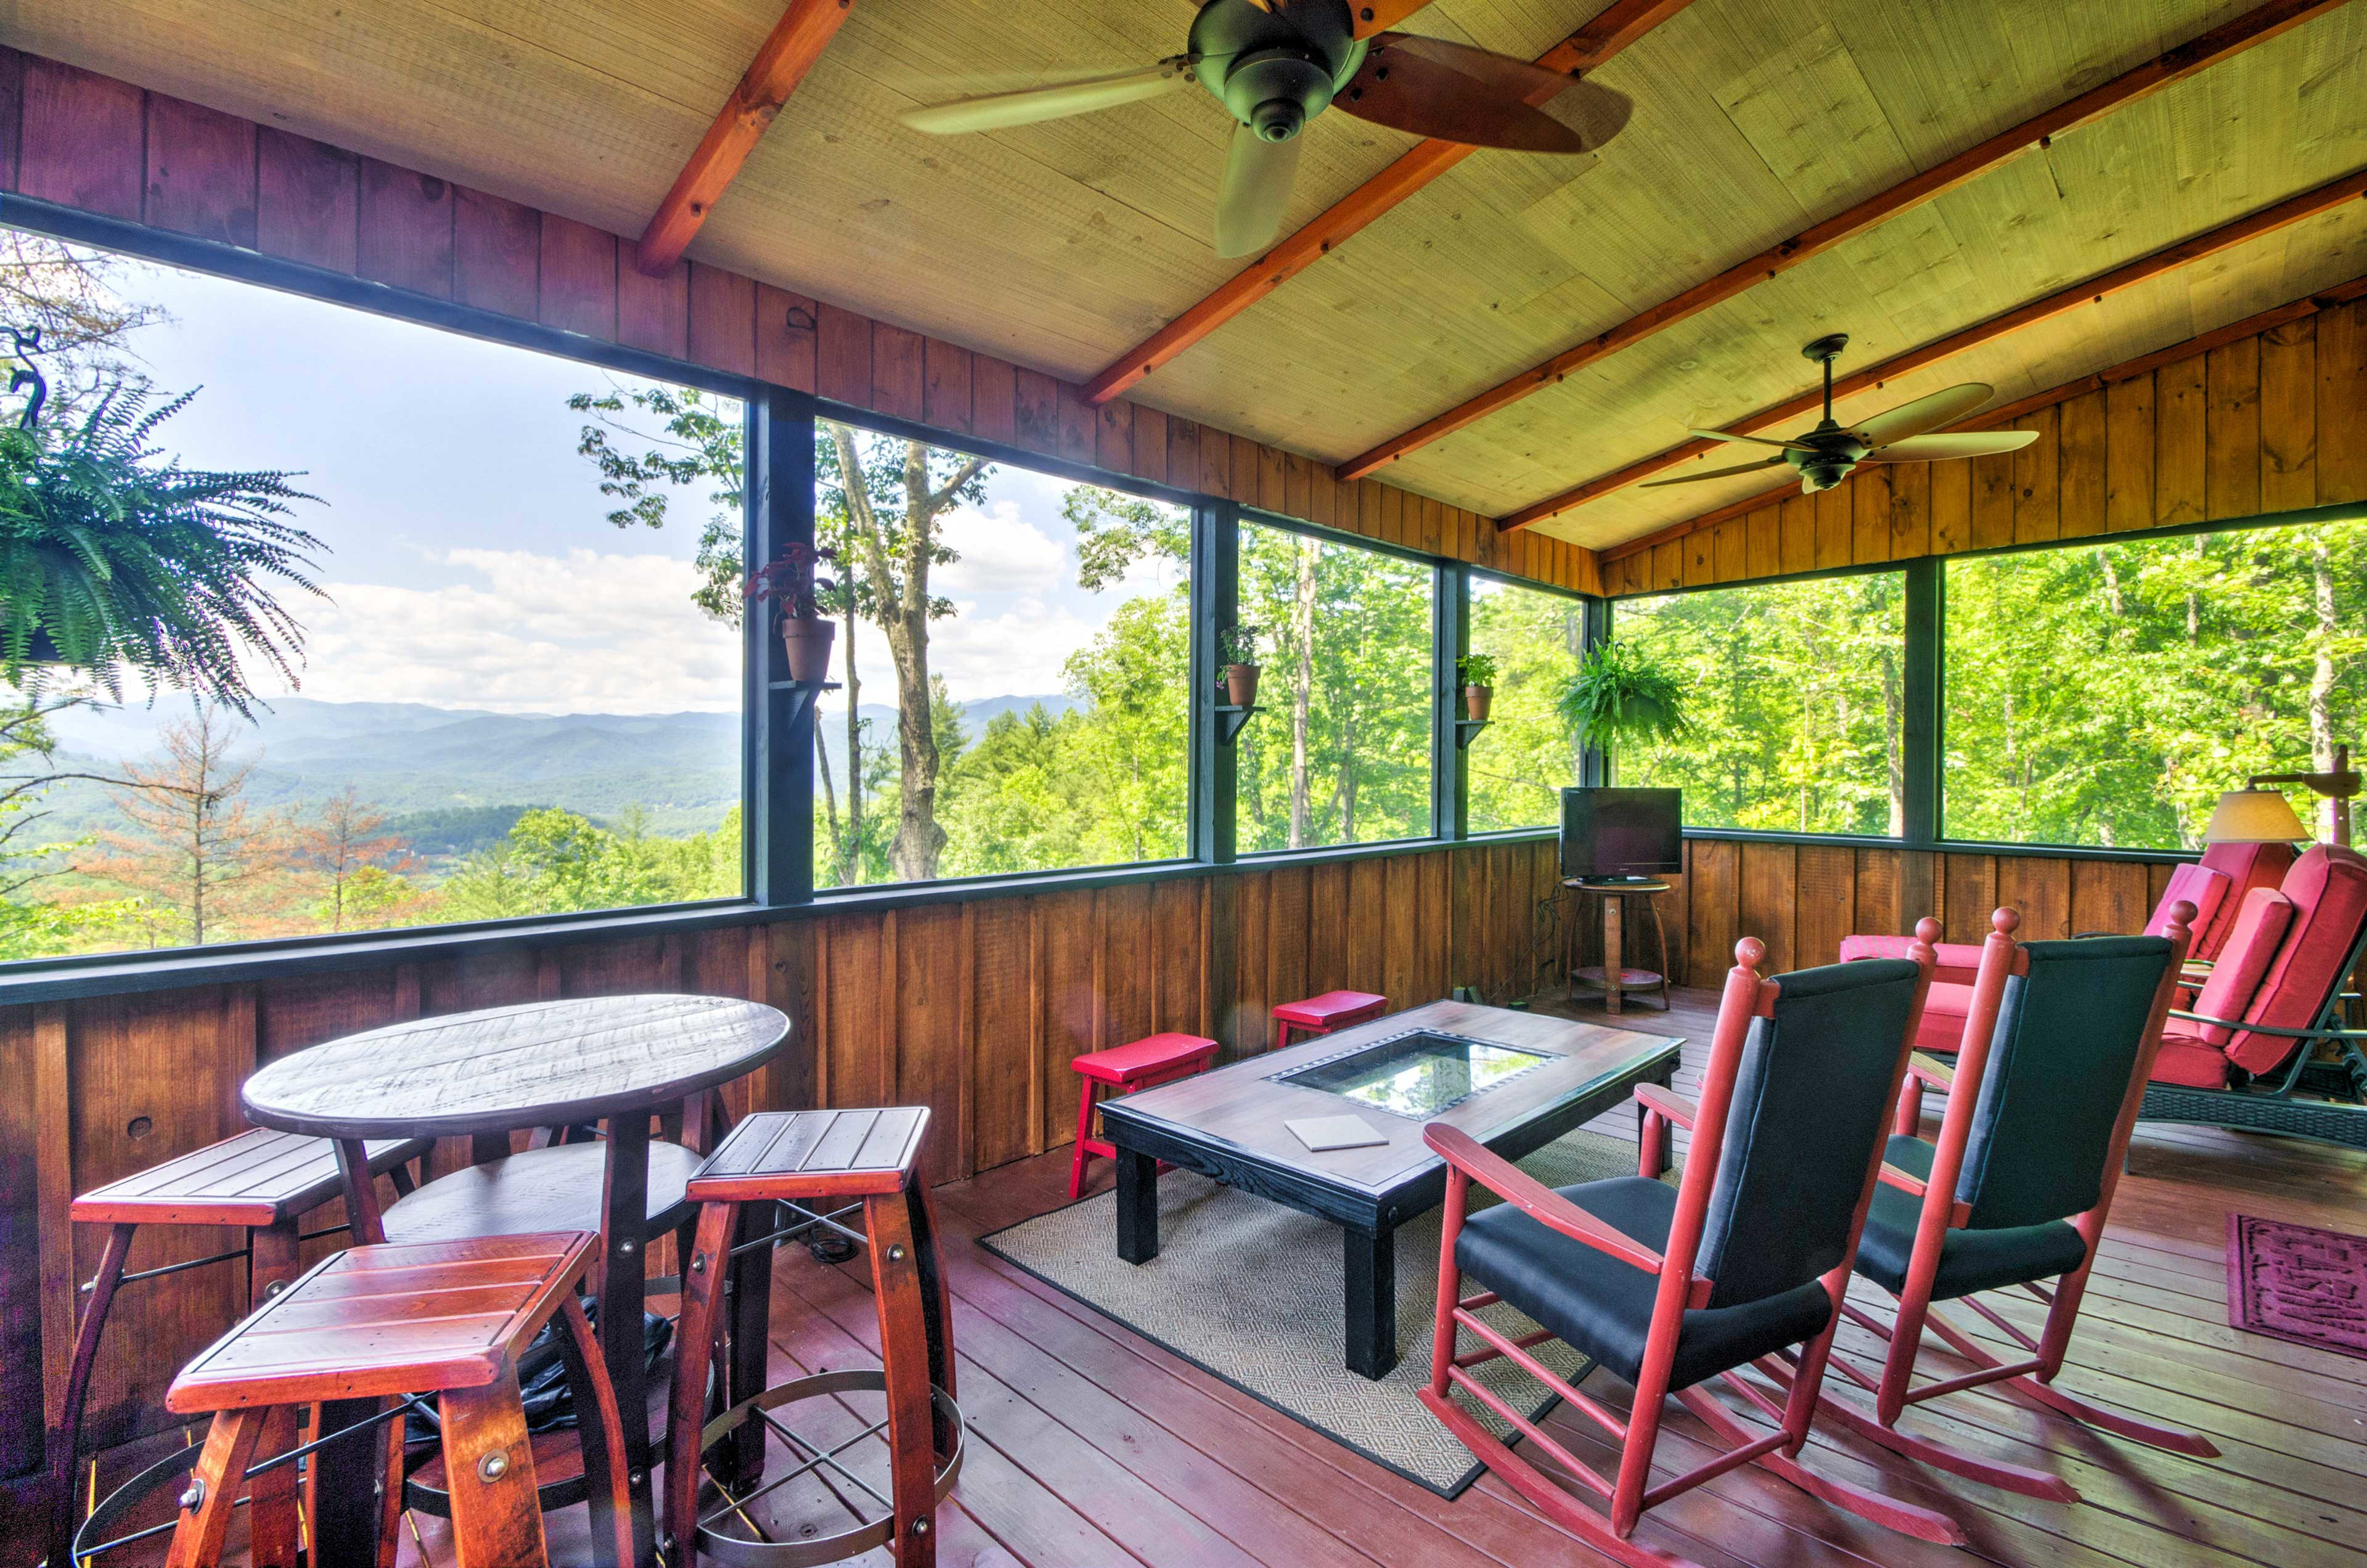 You'll love the stunning mountain views from the screened in porch.